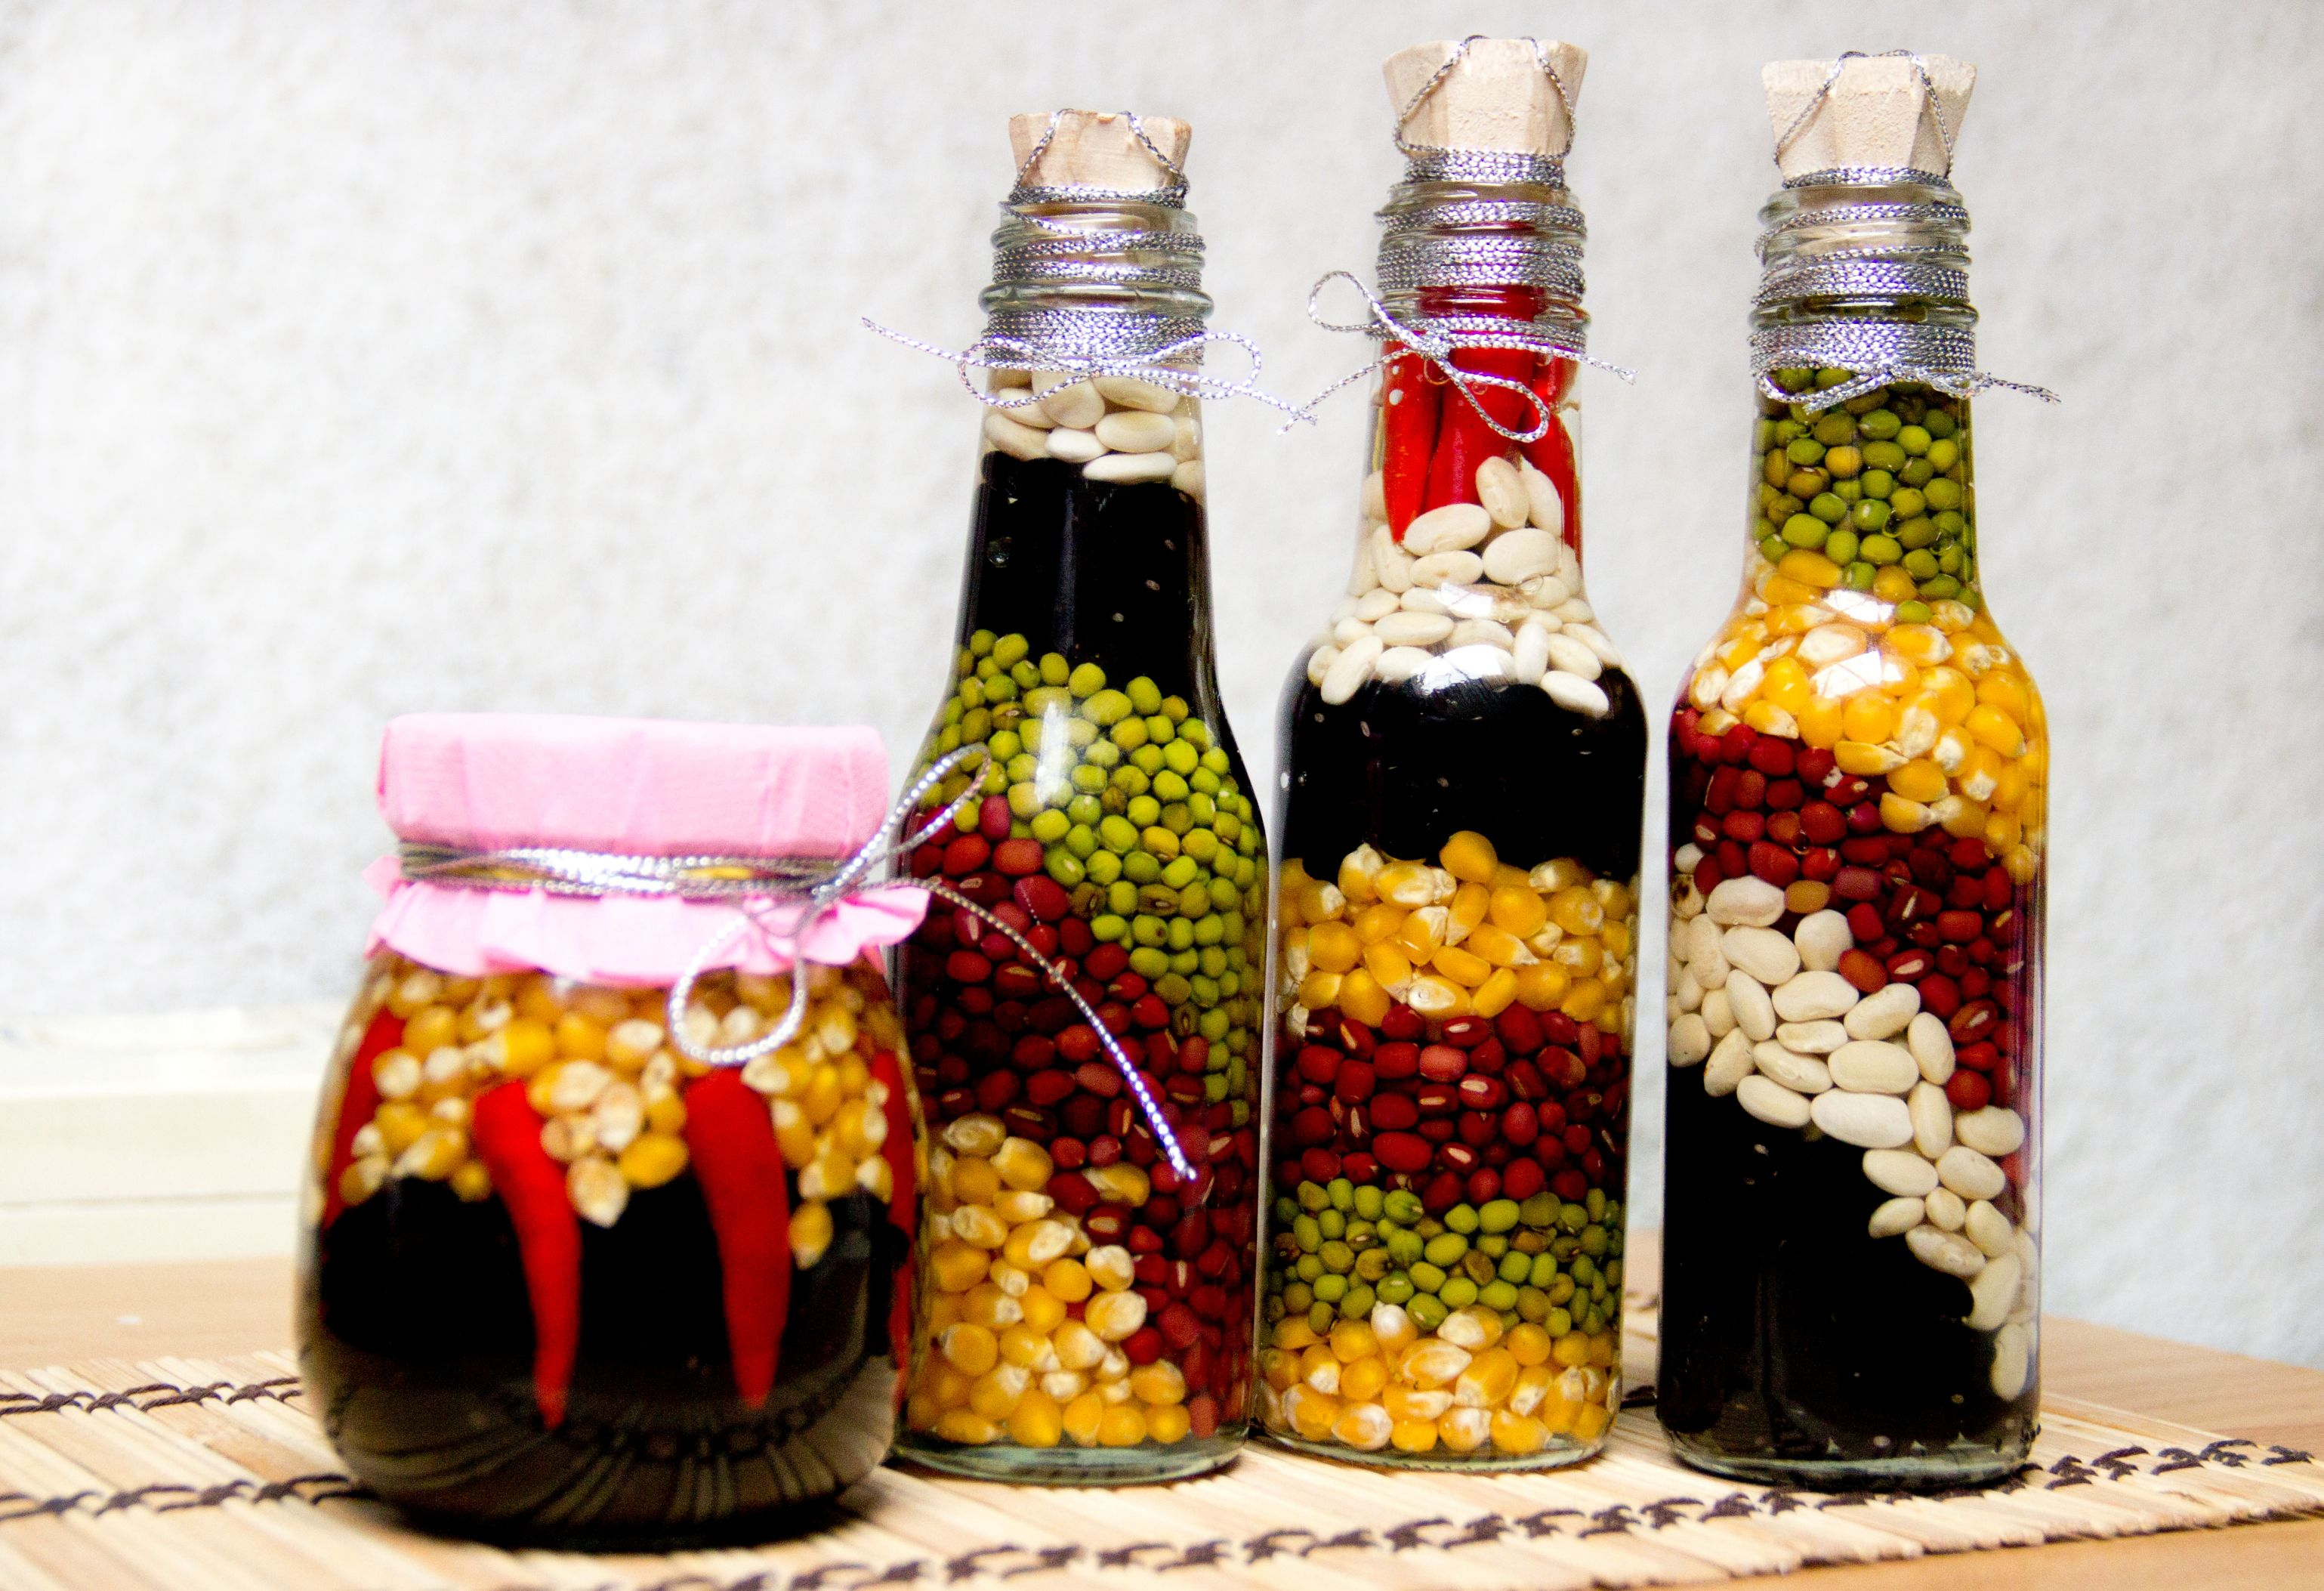 How To Make Decorative Bottles For The Kitchen 7 Steps Bottles Decoration Glass Bottle Diy Glass Bottle Crafts